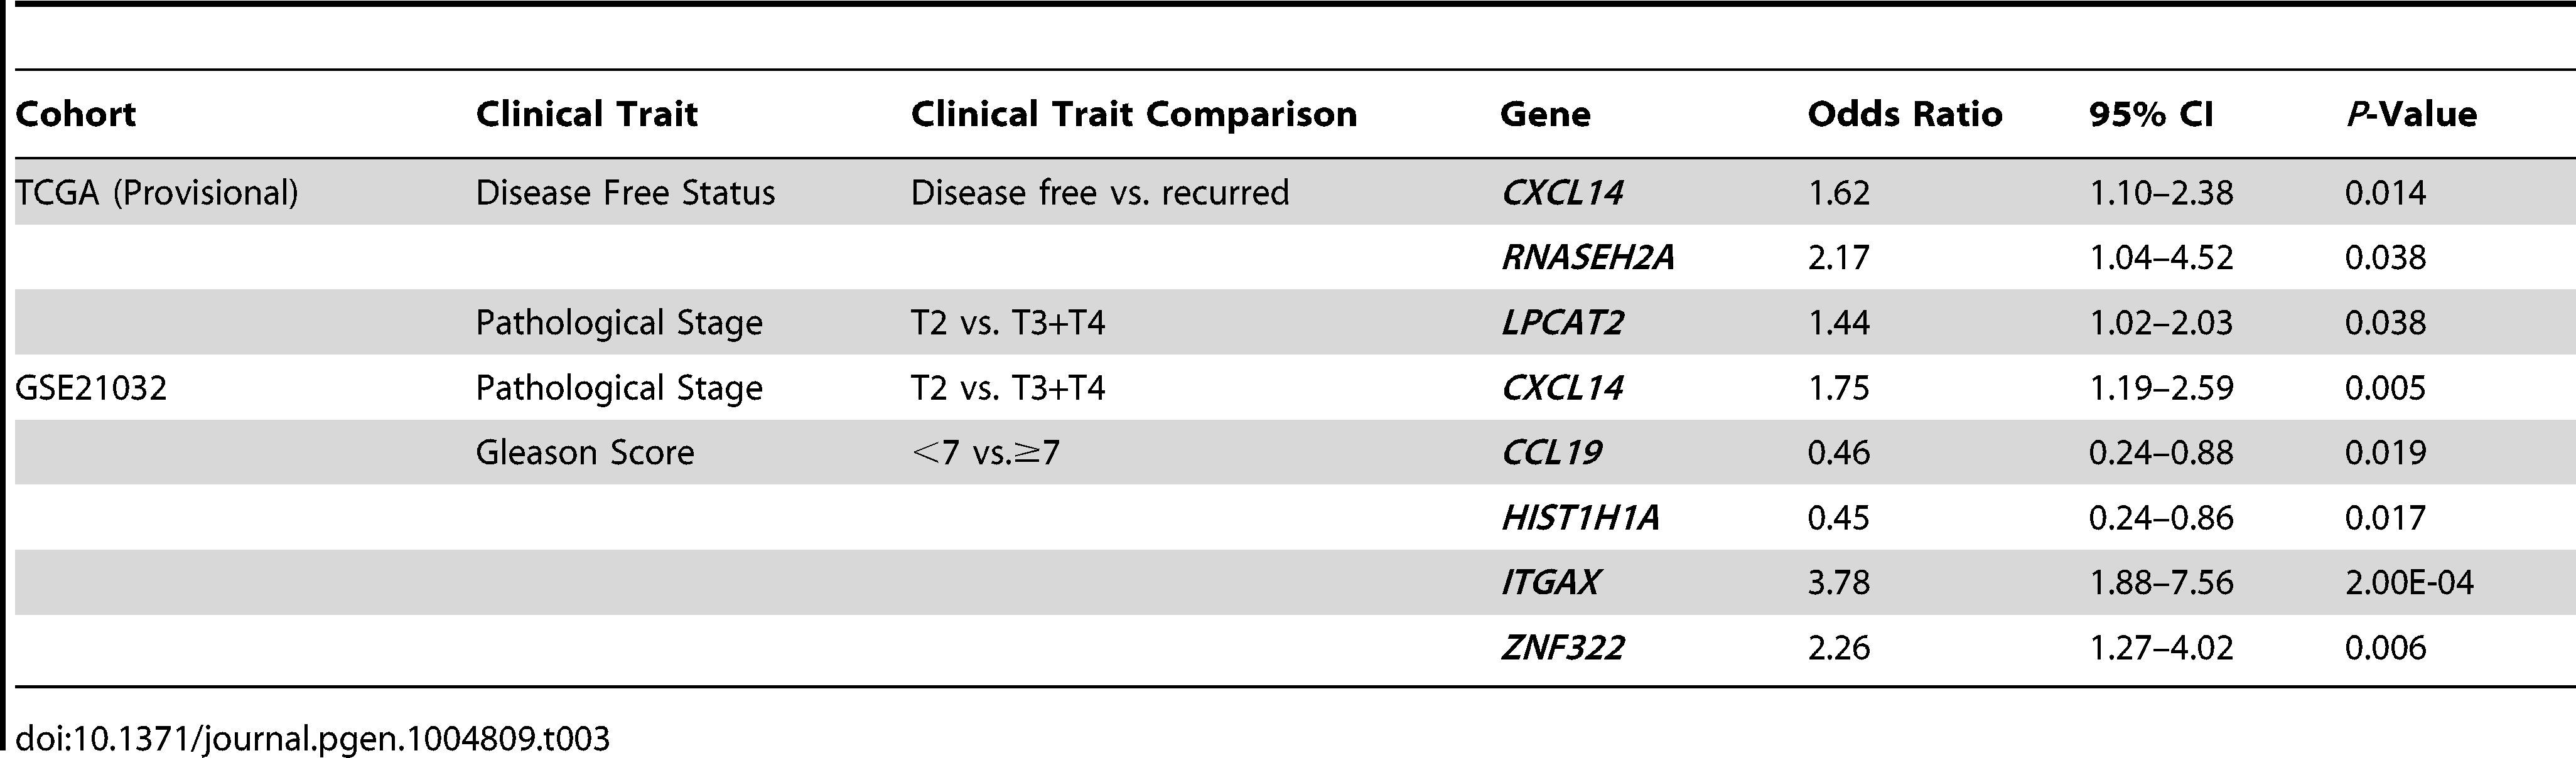 Stepwise logistic regression analysis of QTL candidate genes in TCGA (Provisional) and GSE21032 cohorts.